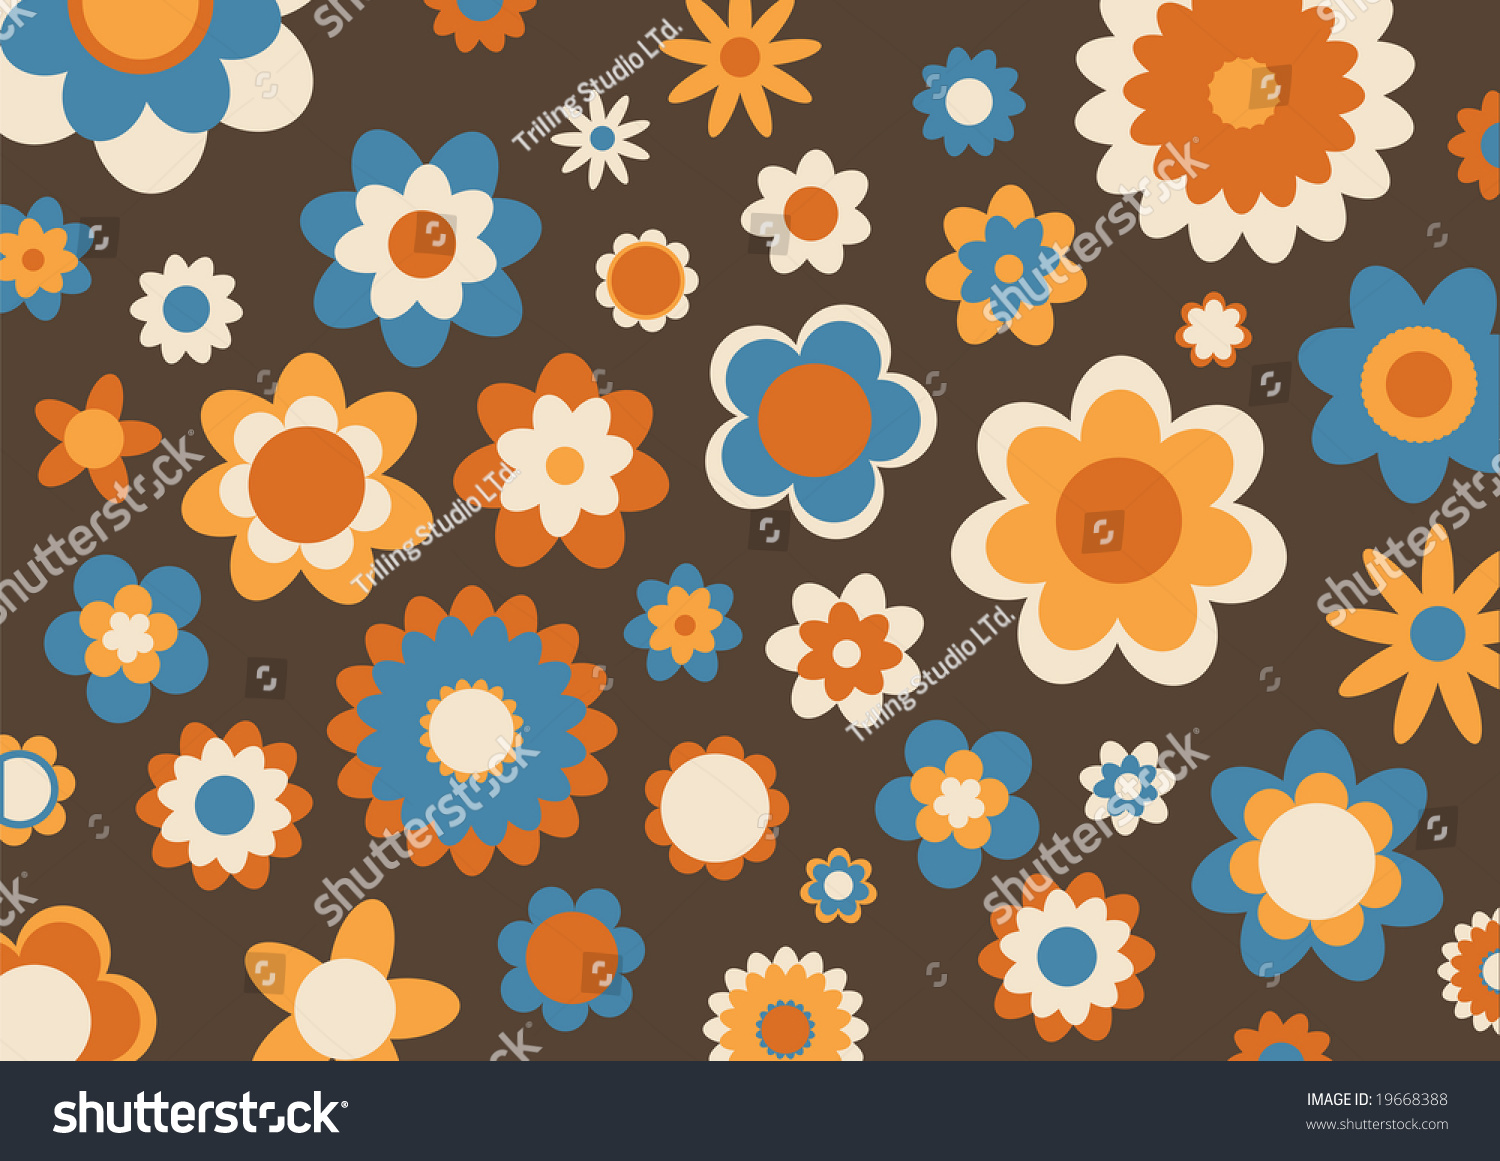 abstract funky pattern wallpaper - photo #18